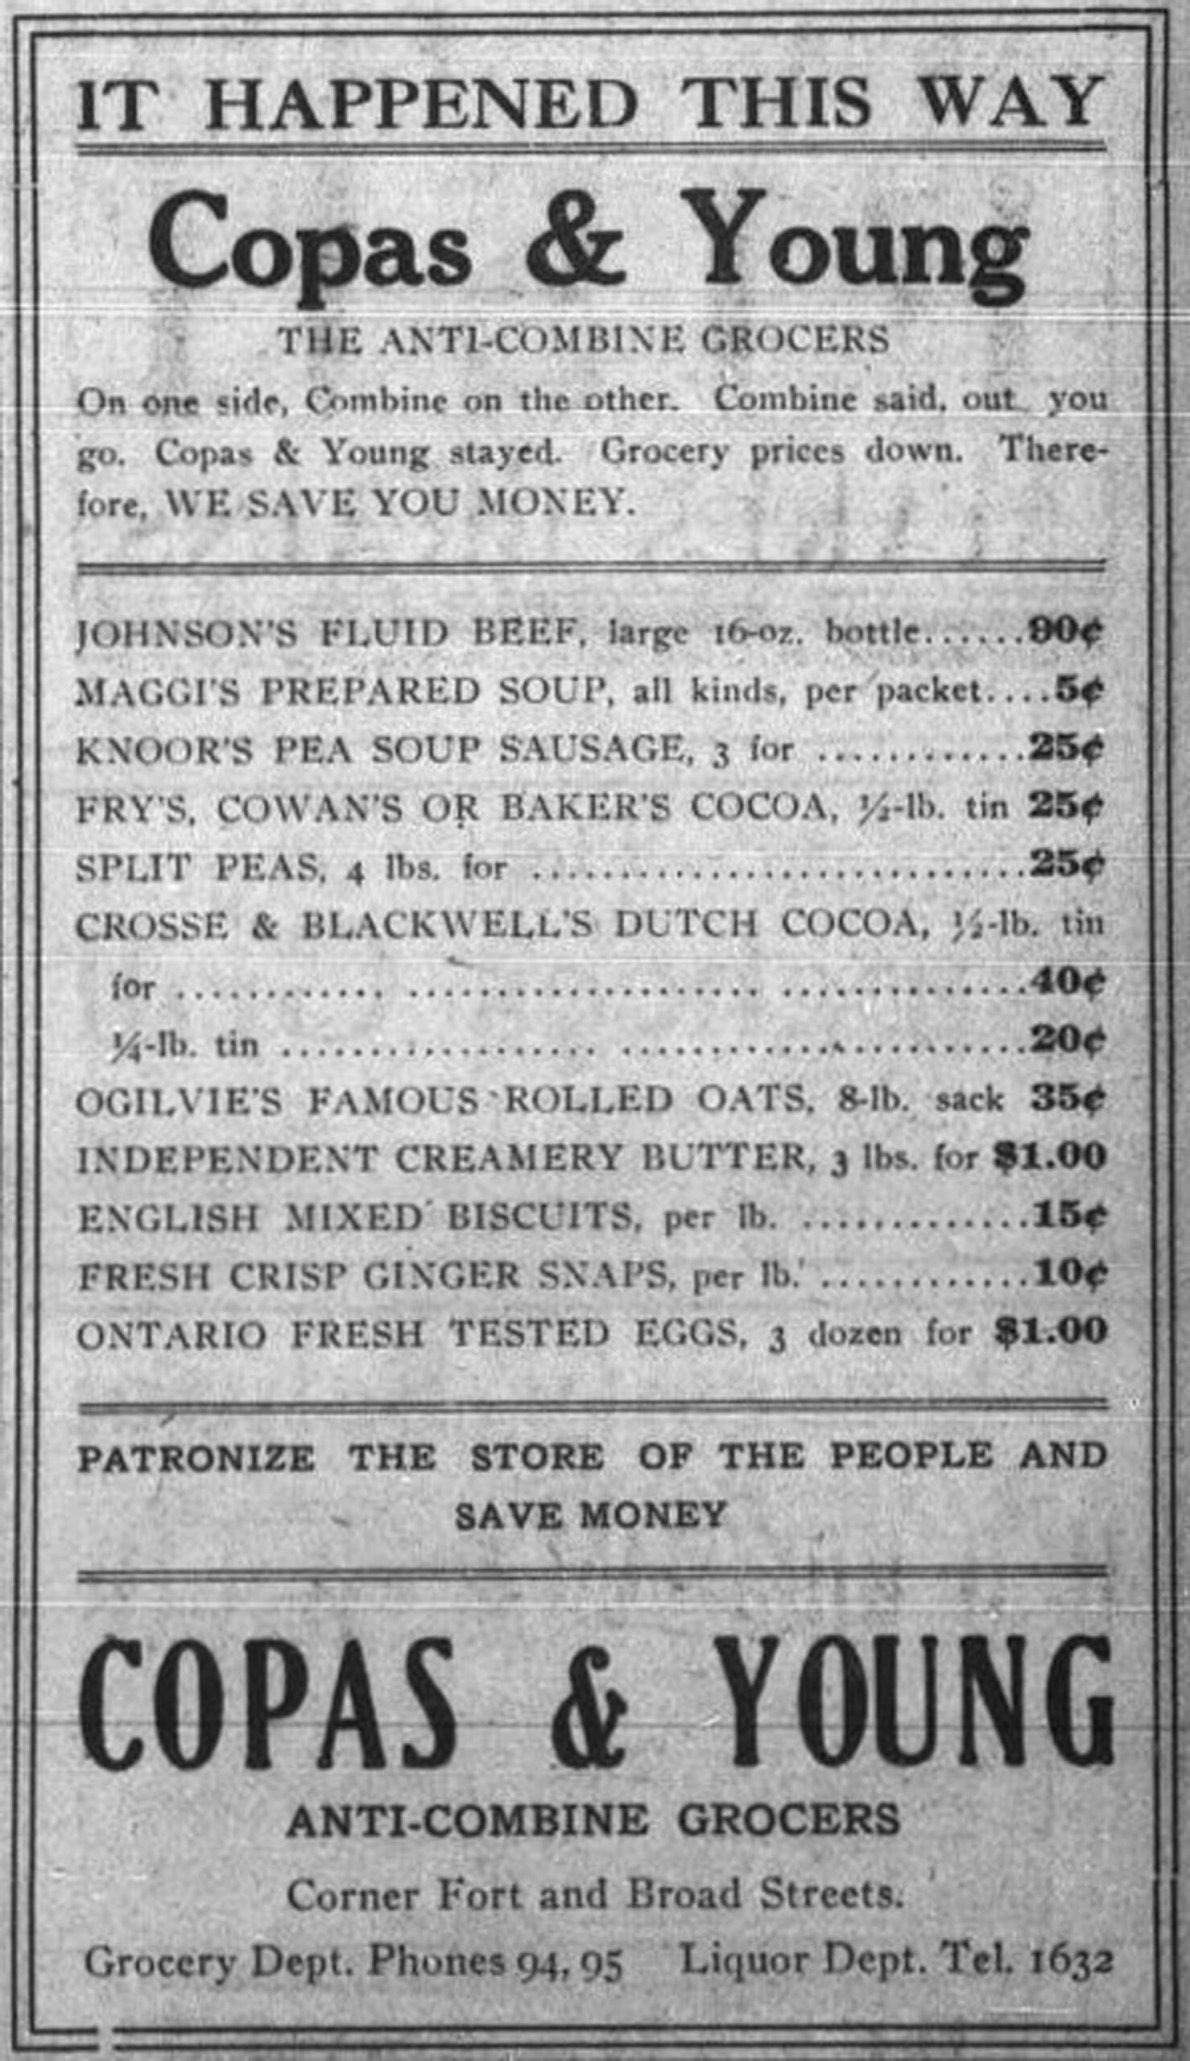 Copas & Young Anti-Combine Grocers, advertisement with prices, 1909. Copas & Young was in the Fell Building at the intersection of Fort Street and Broad Street (Victoria Online Sightseeing collection)